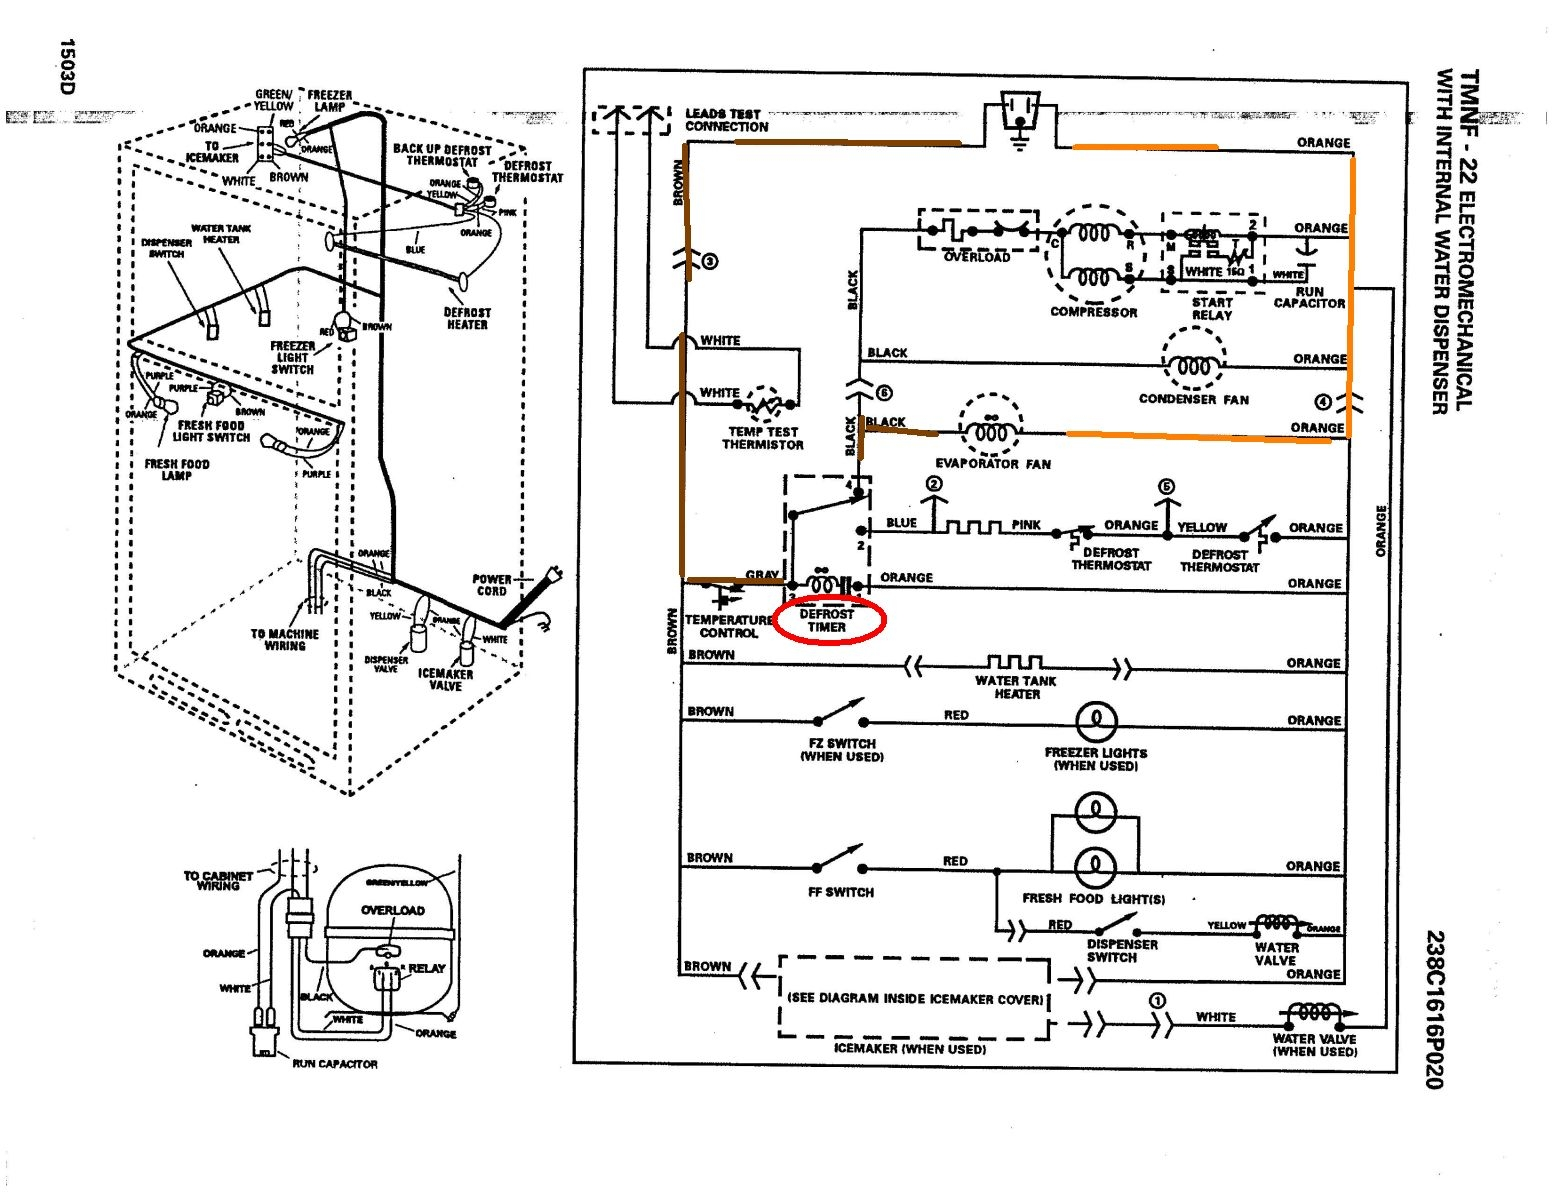 hight resolution of wiring diagram for kenmore elite refrigerator wiring diagram expert kenmore refrigerator schematic diagram